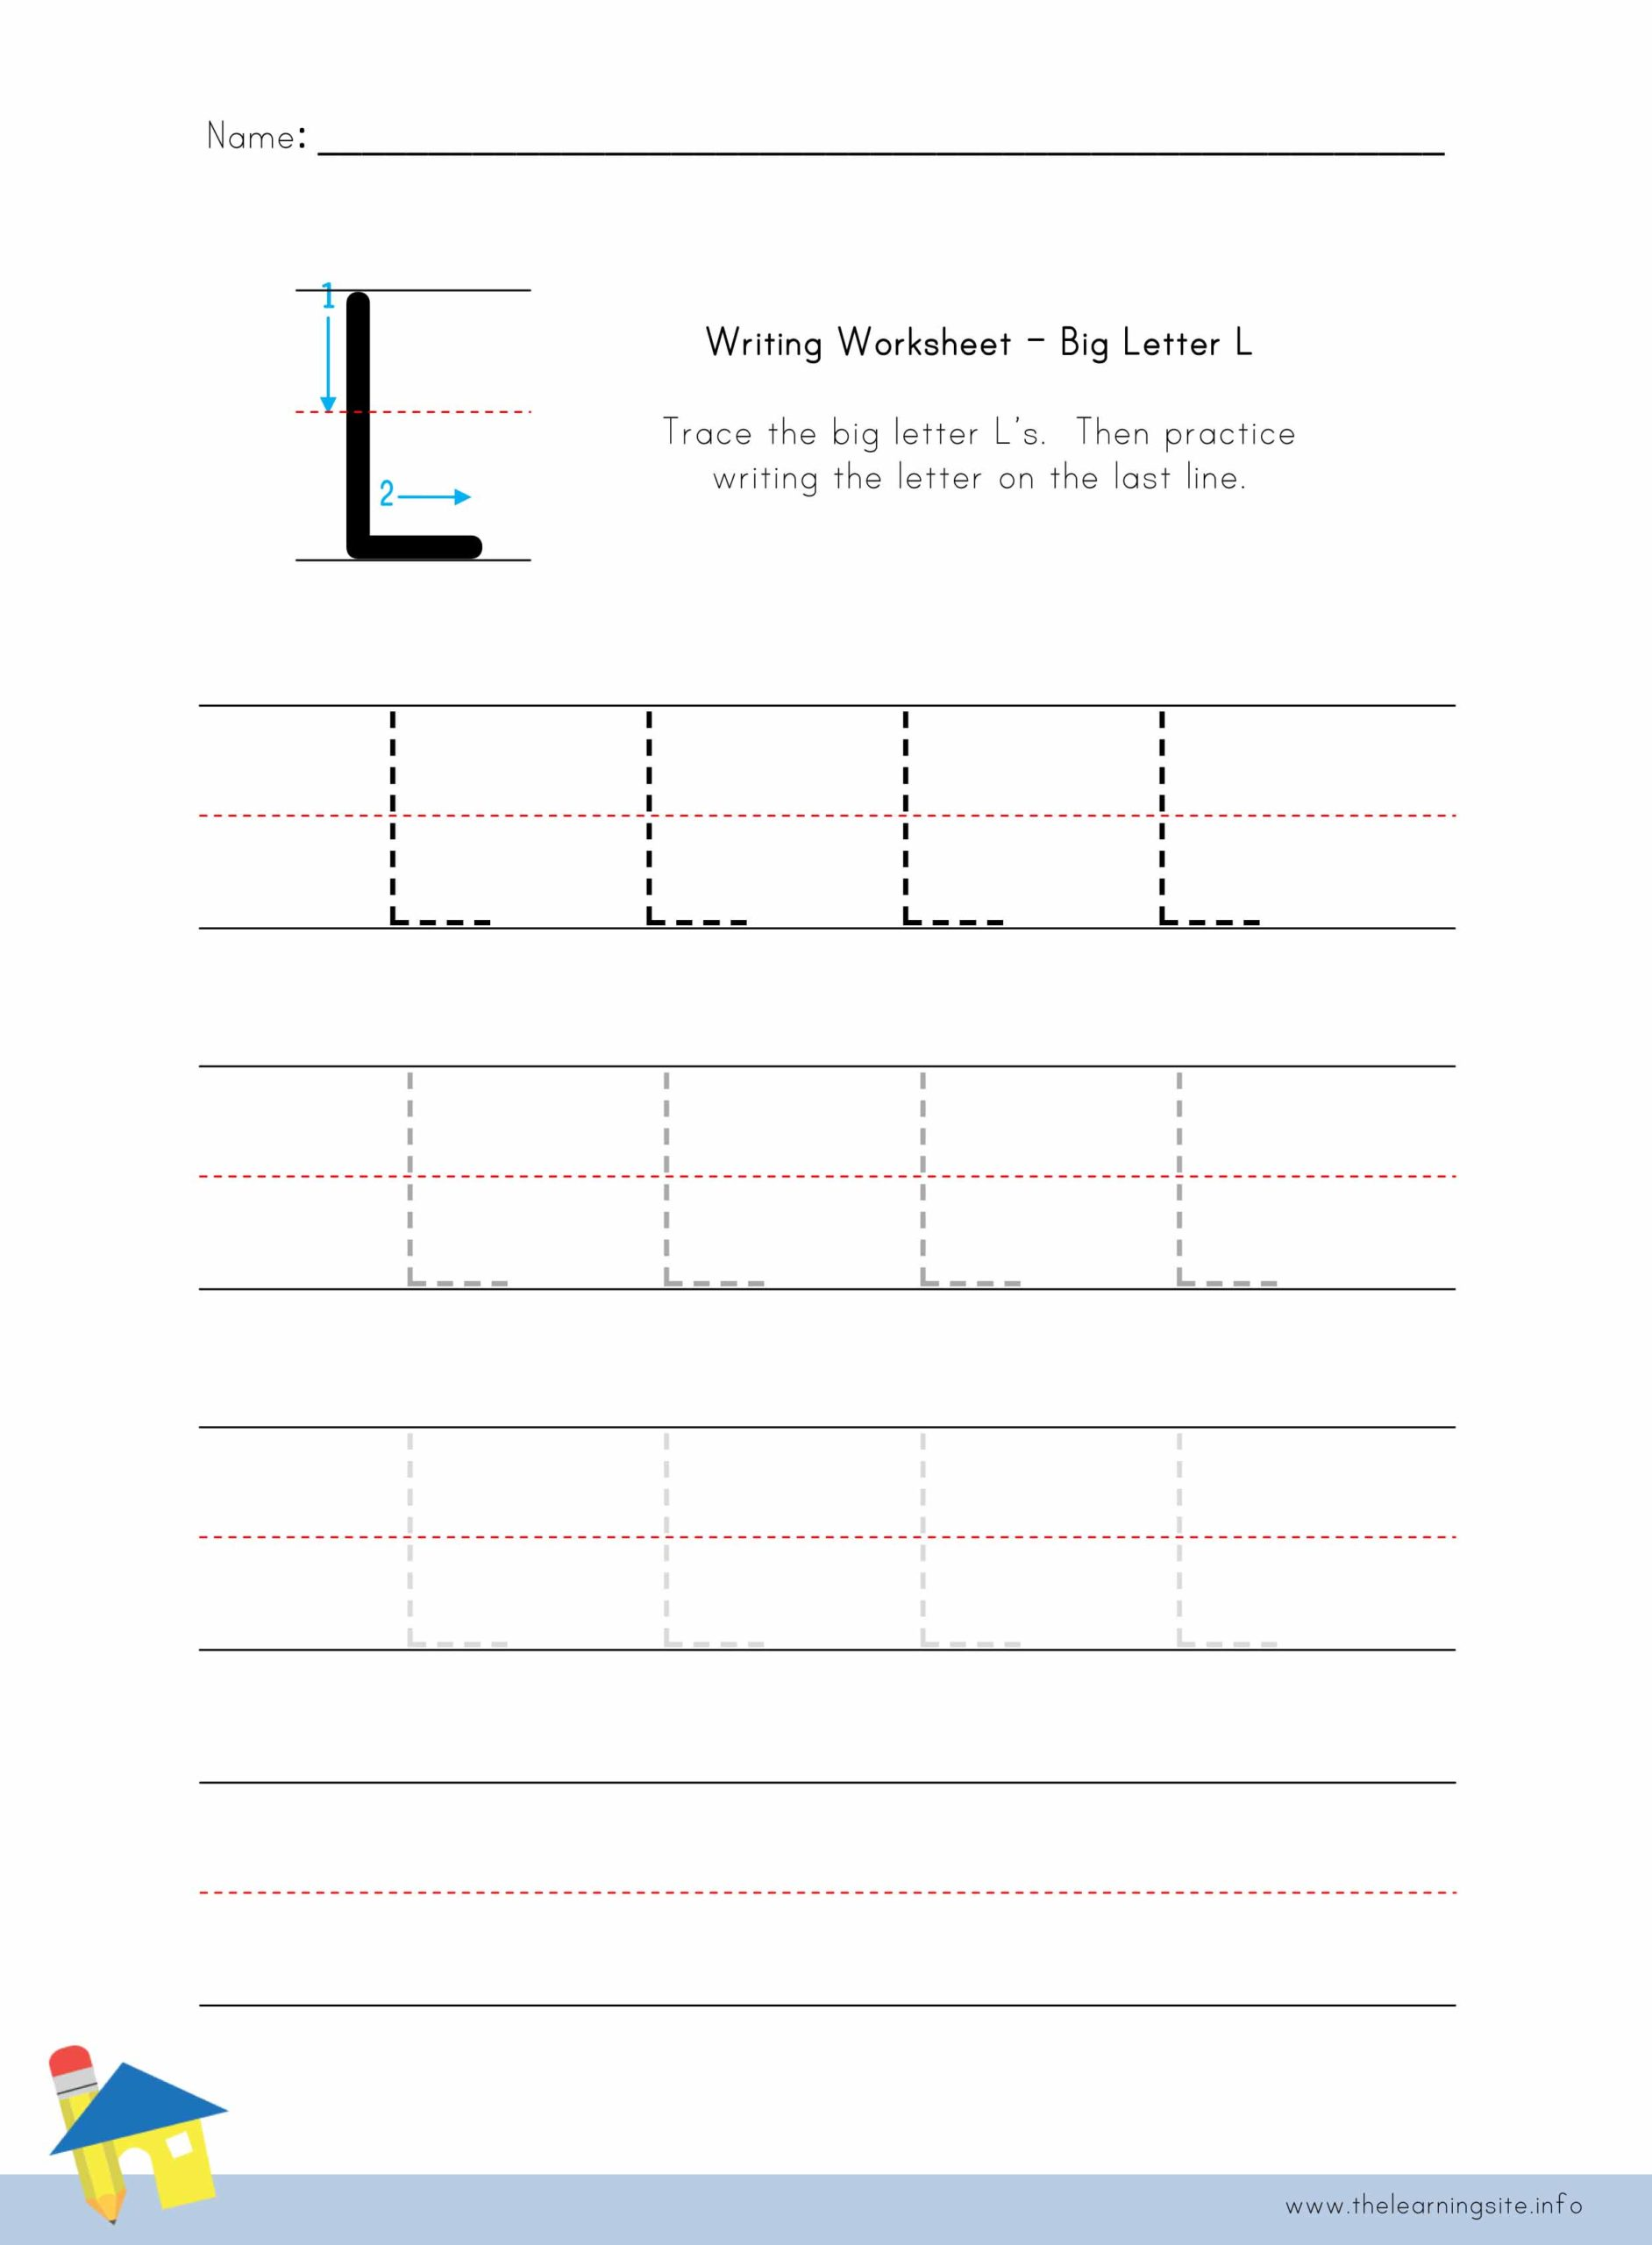 Big Letter L Writing Worksheet The Learning Site